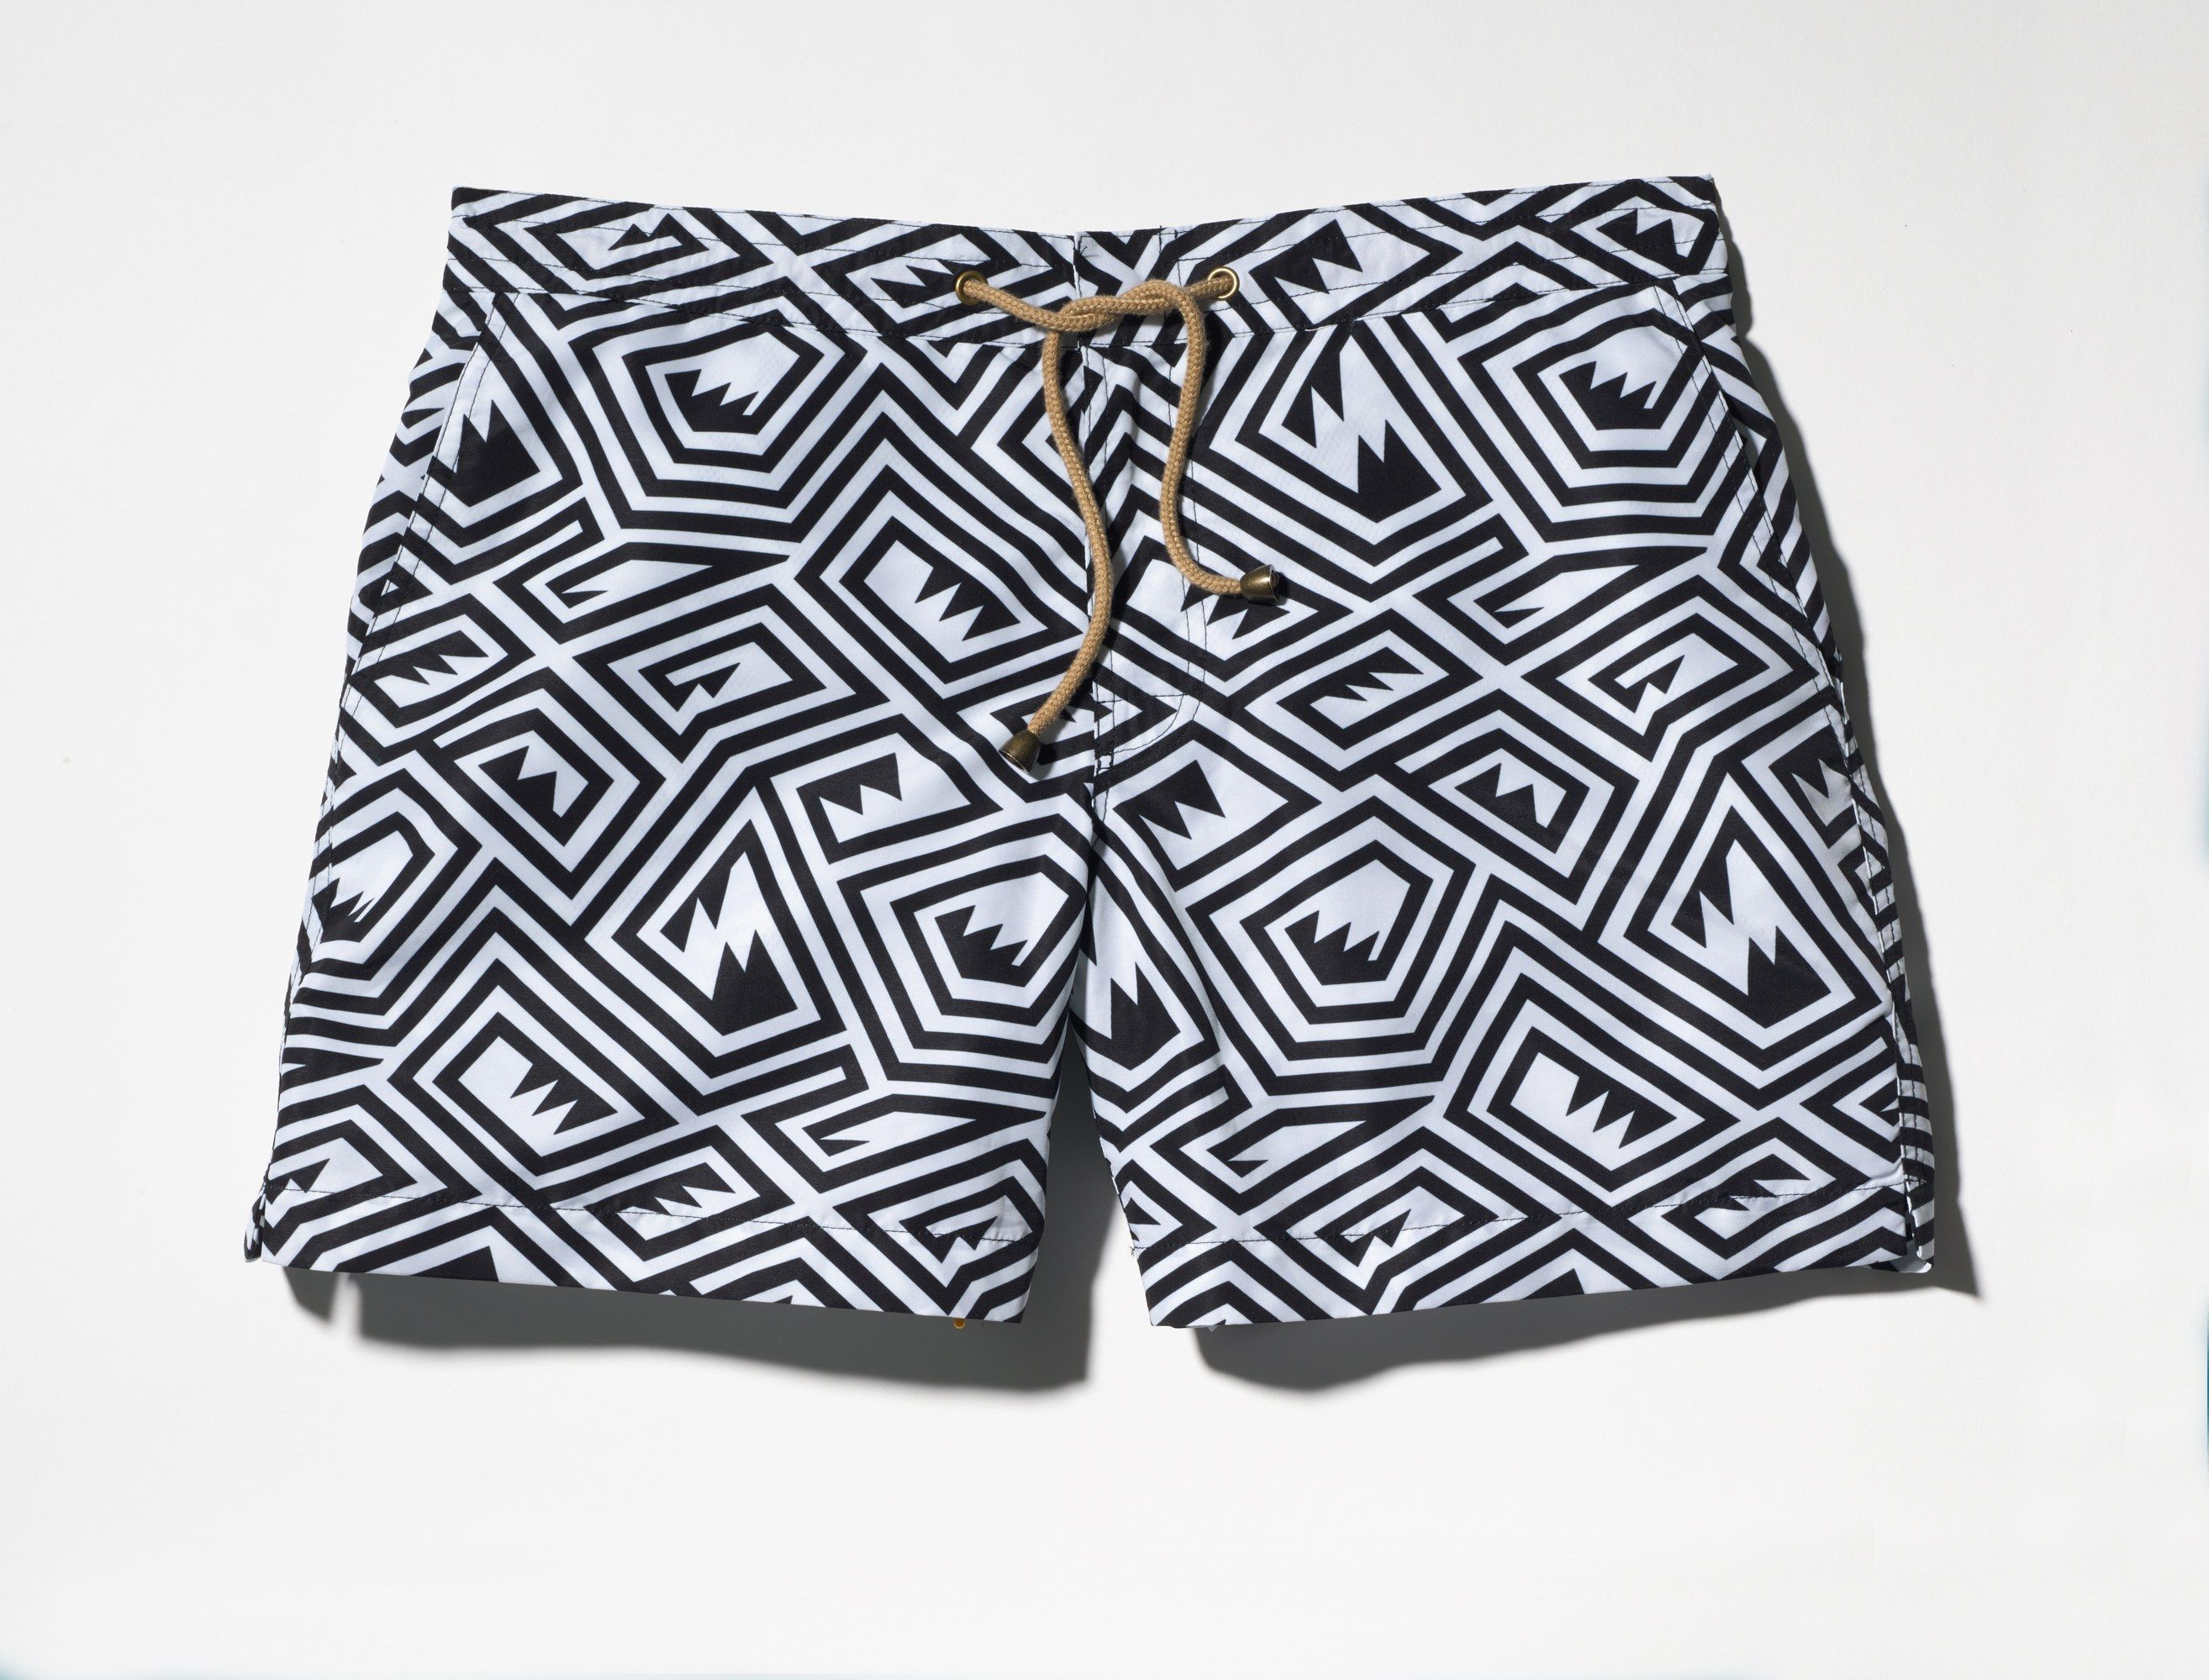 834a5443f1 Your guide to looking good at the beach this summer   quality ...